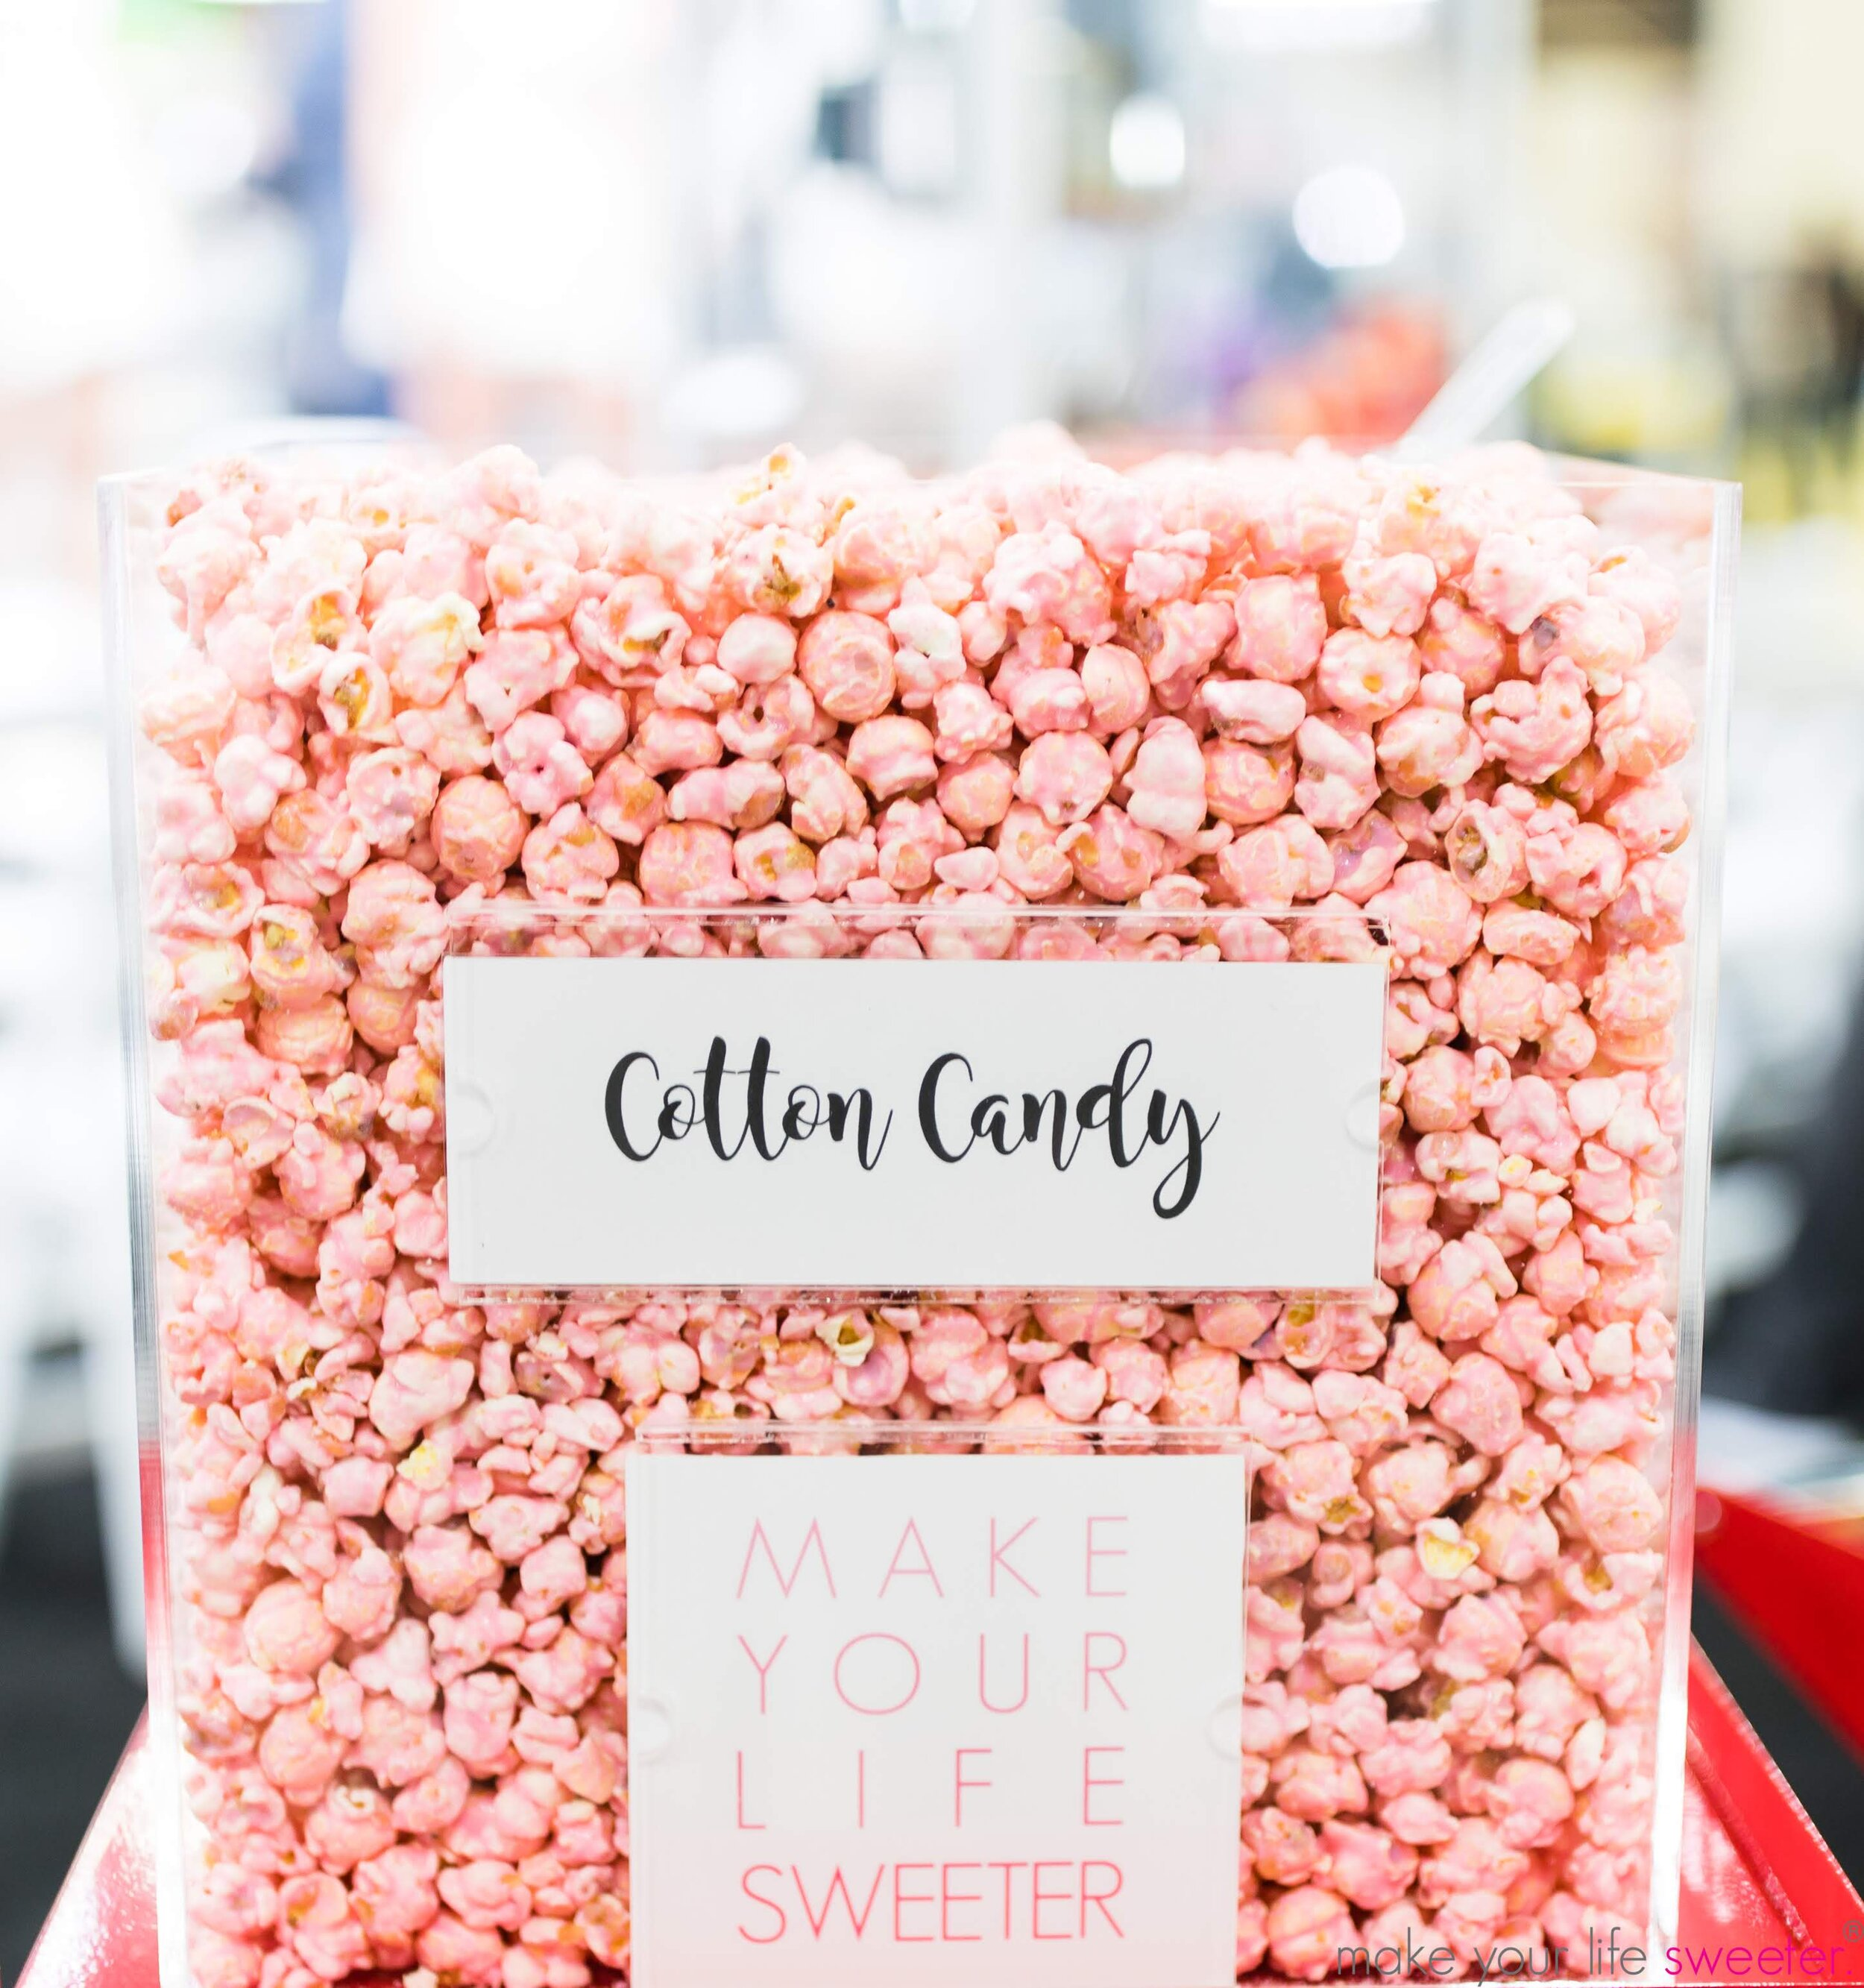 Make Your Life Sweeter Events - Amrstong McCall World's Fair Hair Show: Conair Booth - Hotpoppin gourmet popcorn: Cotton Candy Flavor